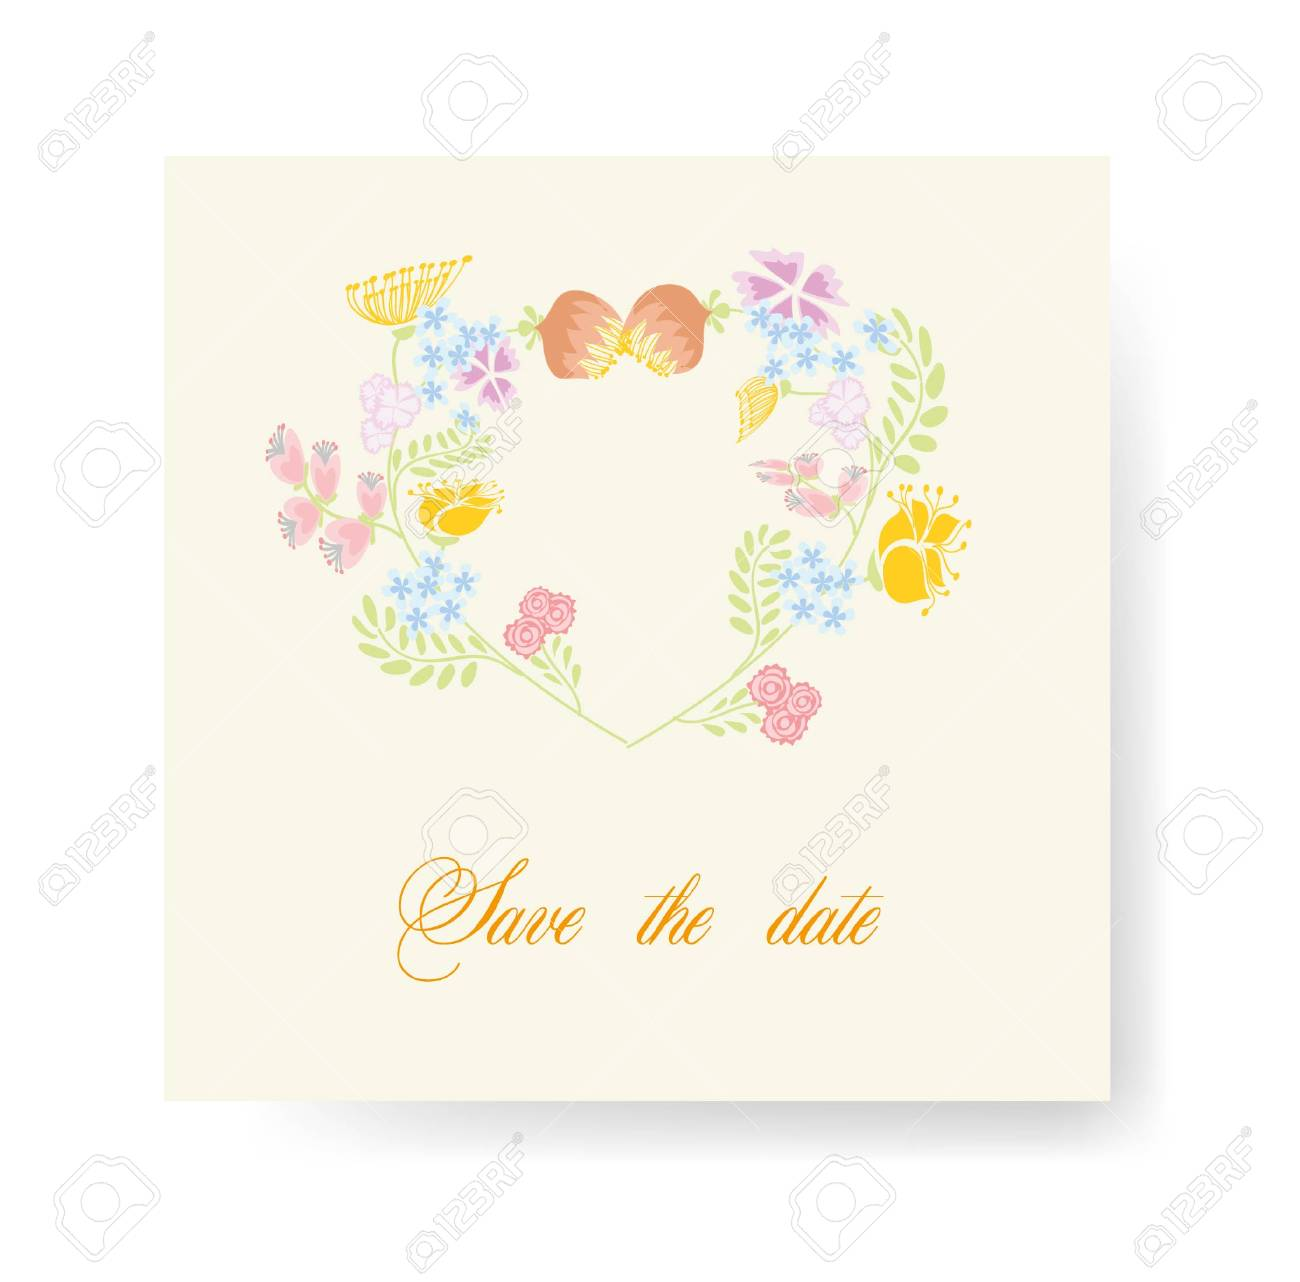 Flower Vector Banners For Wedding Invitation Royalty Free Cliparts ...